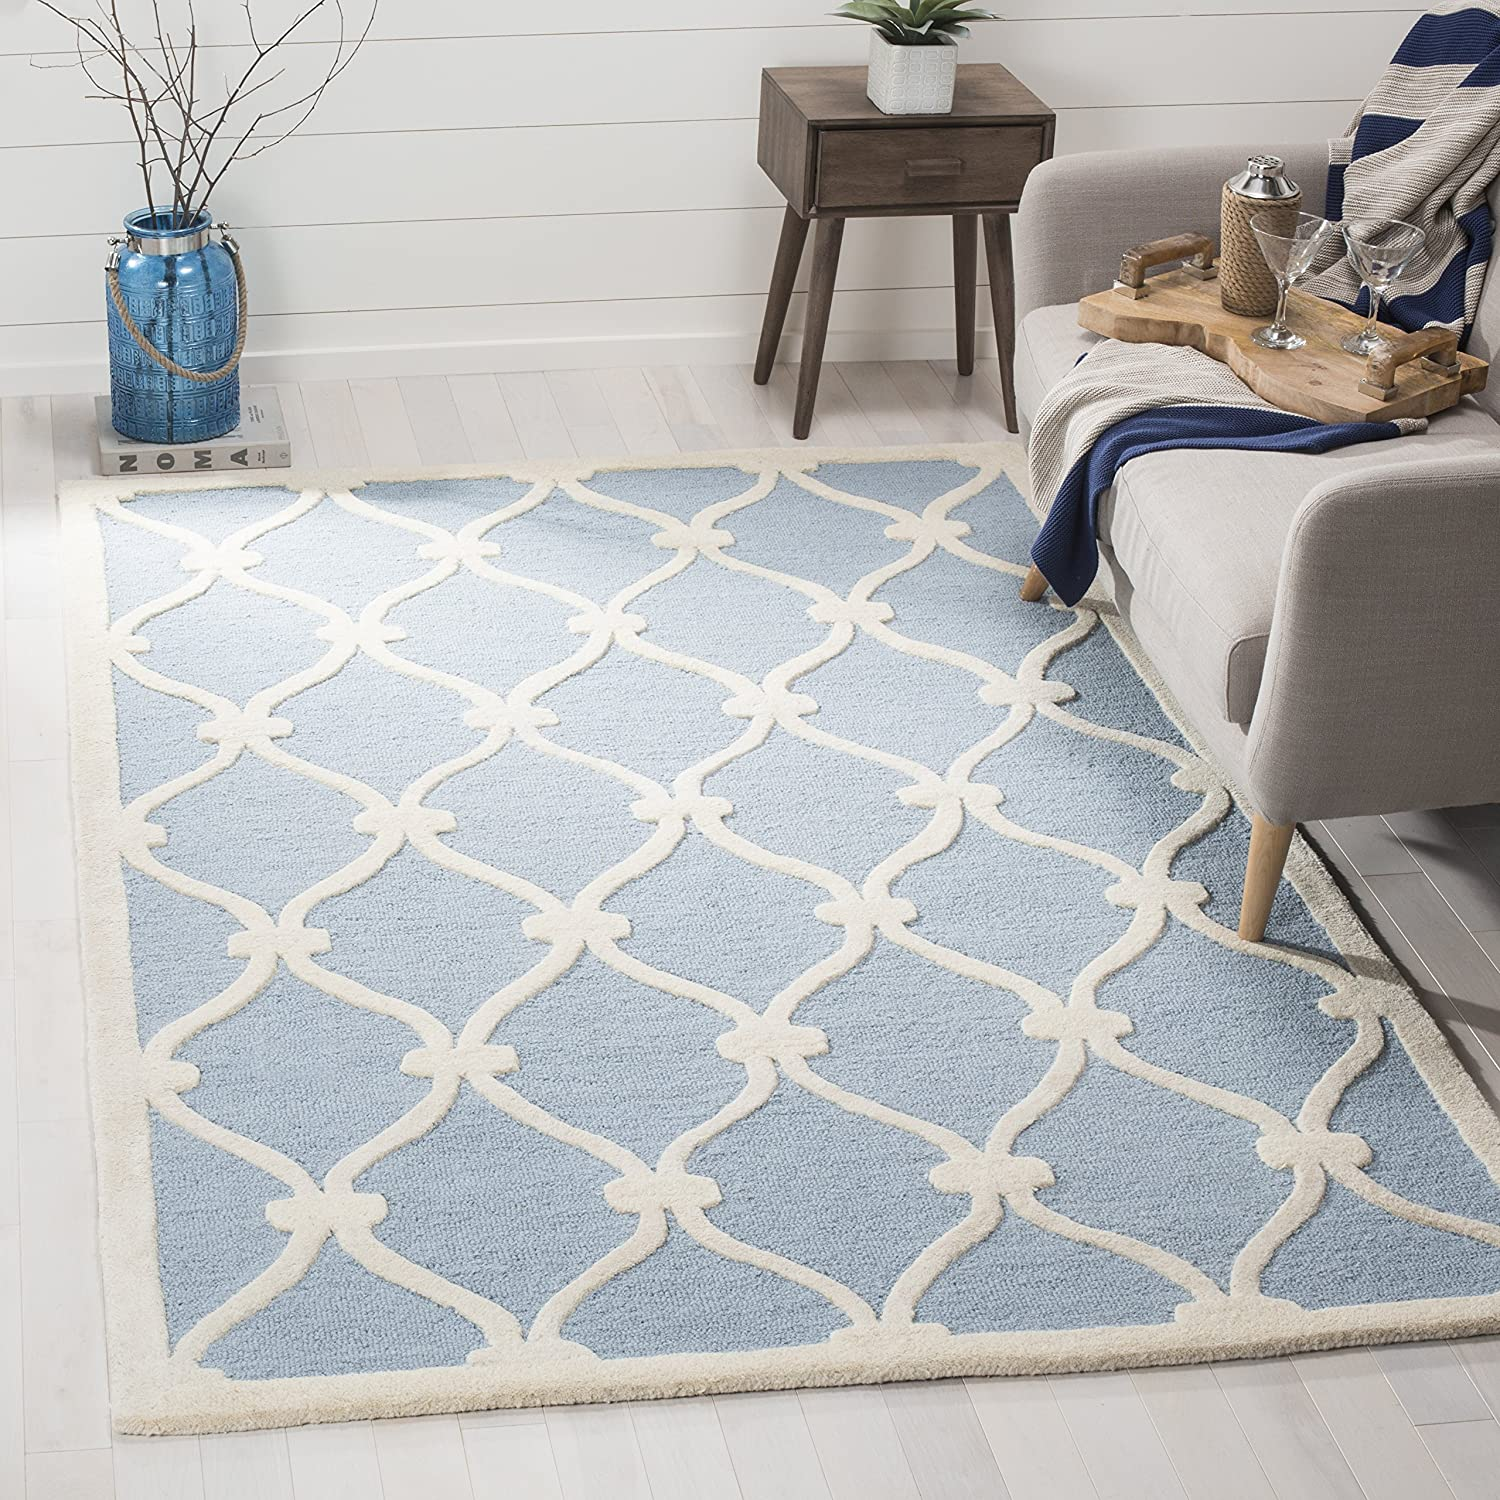 2 X 3 Safavieh Cambridge Collection Cam782b Handcrafted Moroccan Geometric Blue And Ivory Premium Wool Area Rug Runners Home Kitchen